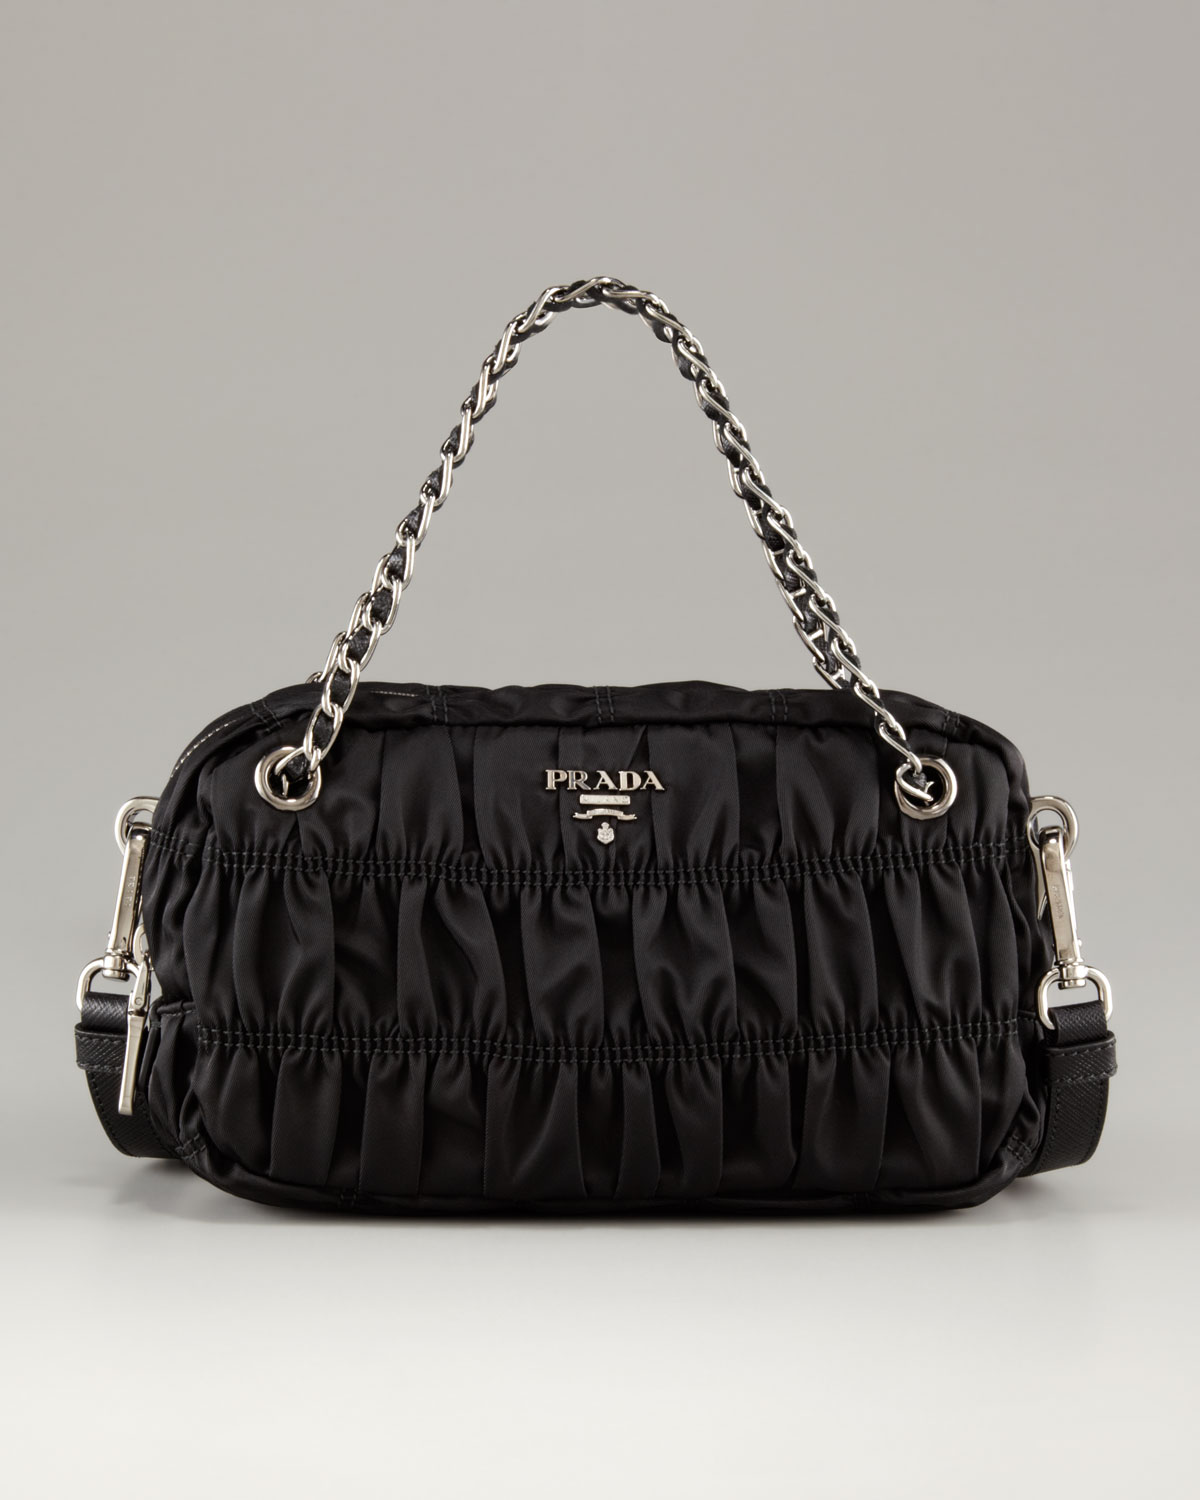 green prada handbag - Prada Extra Small Zip Top Ruched Nylon Shoulder Bag in Black | Lyst